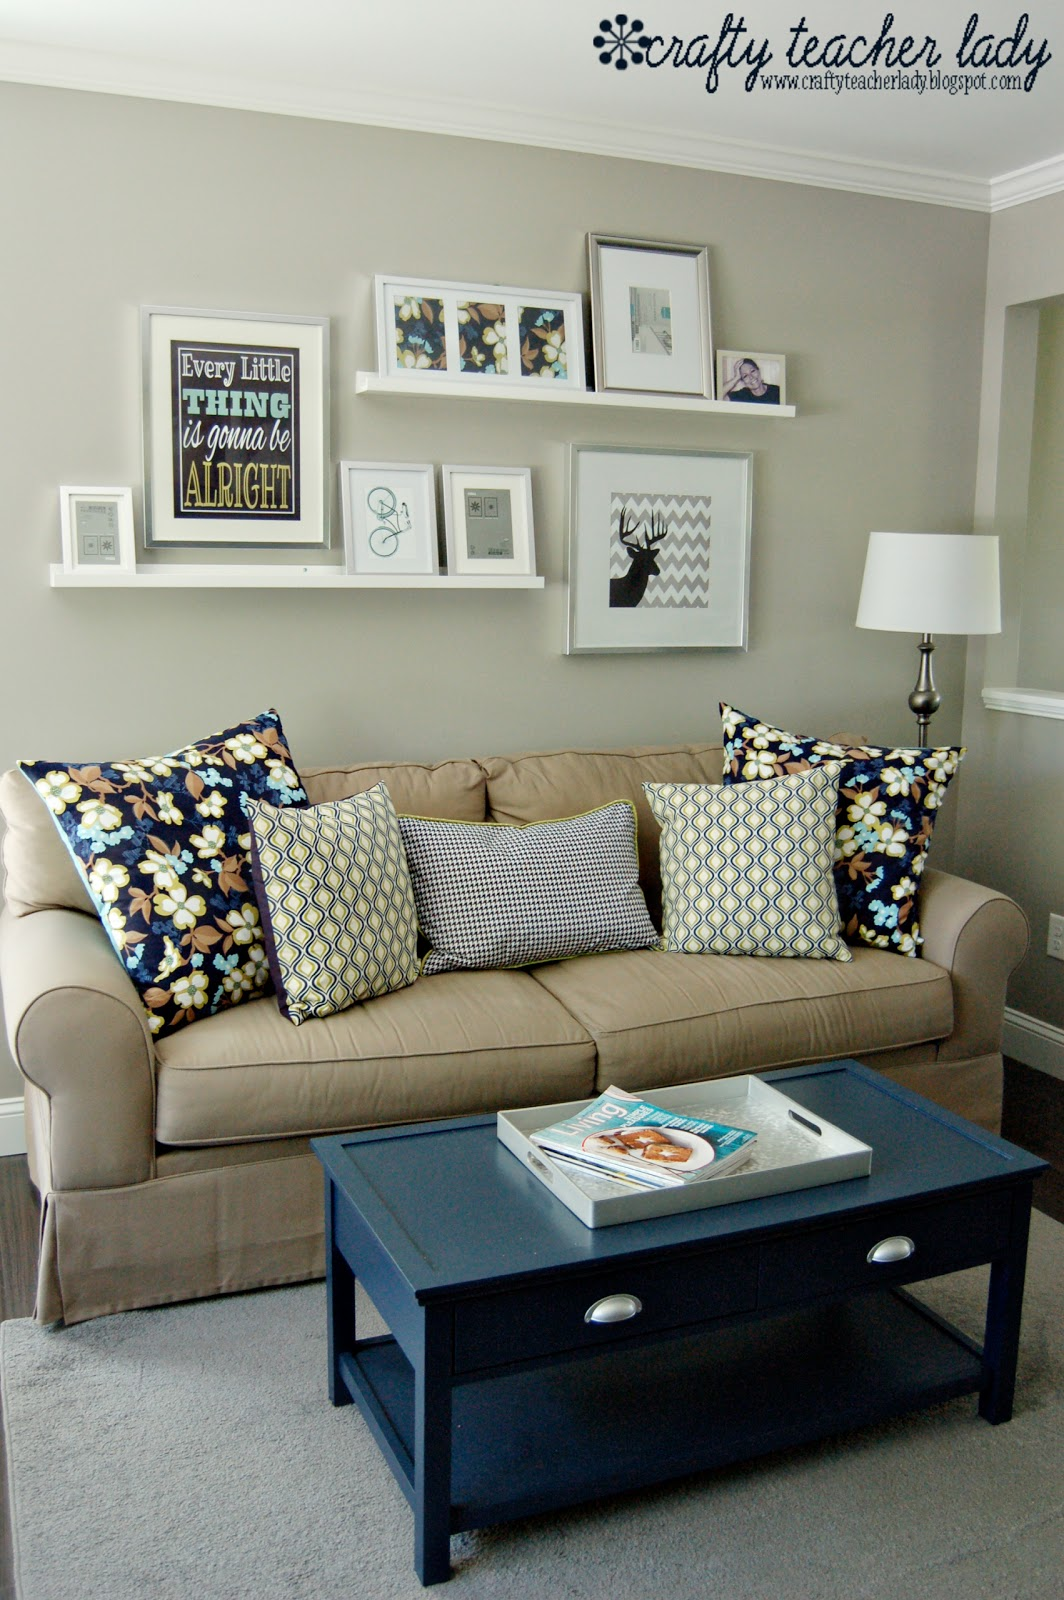 Wall Art Ideas For Living Room Pinterest : Crafty teacher lady coffee table makeover